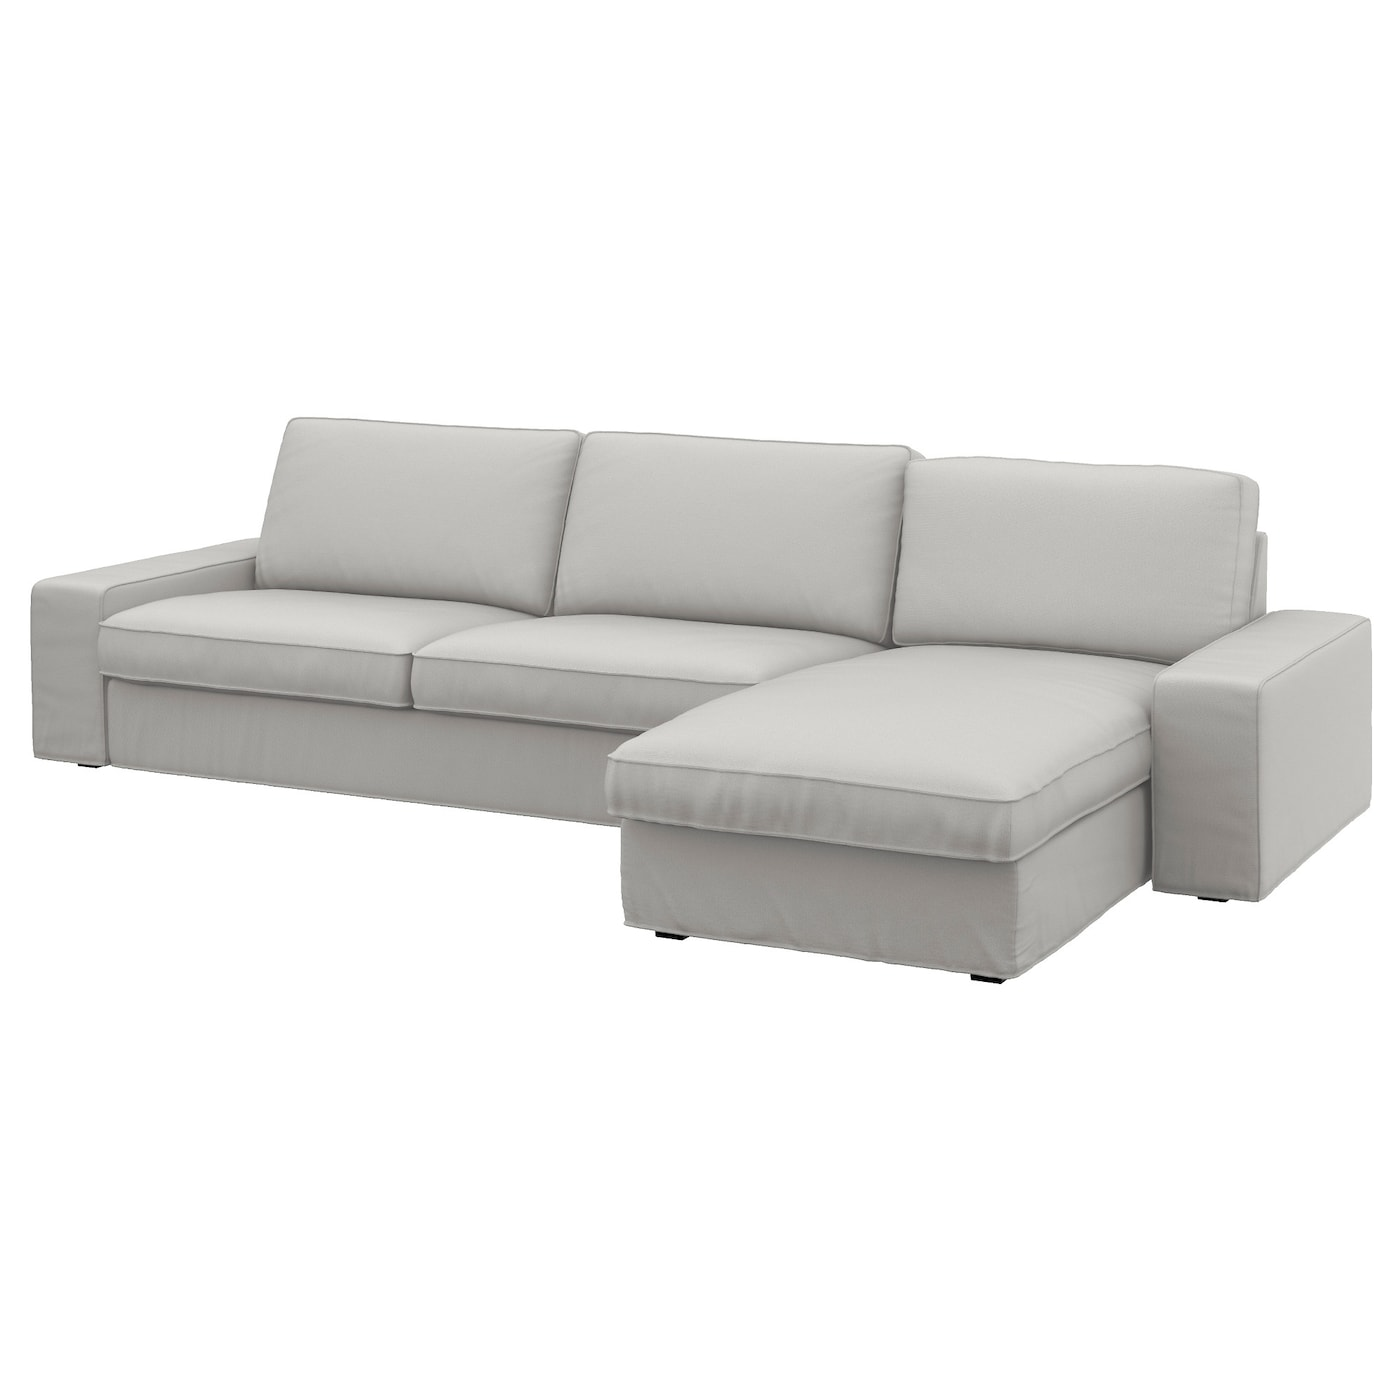 Kivik 4 seat sofa with chaise longue ramna light grey ikea for Kivik chaise ikea